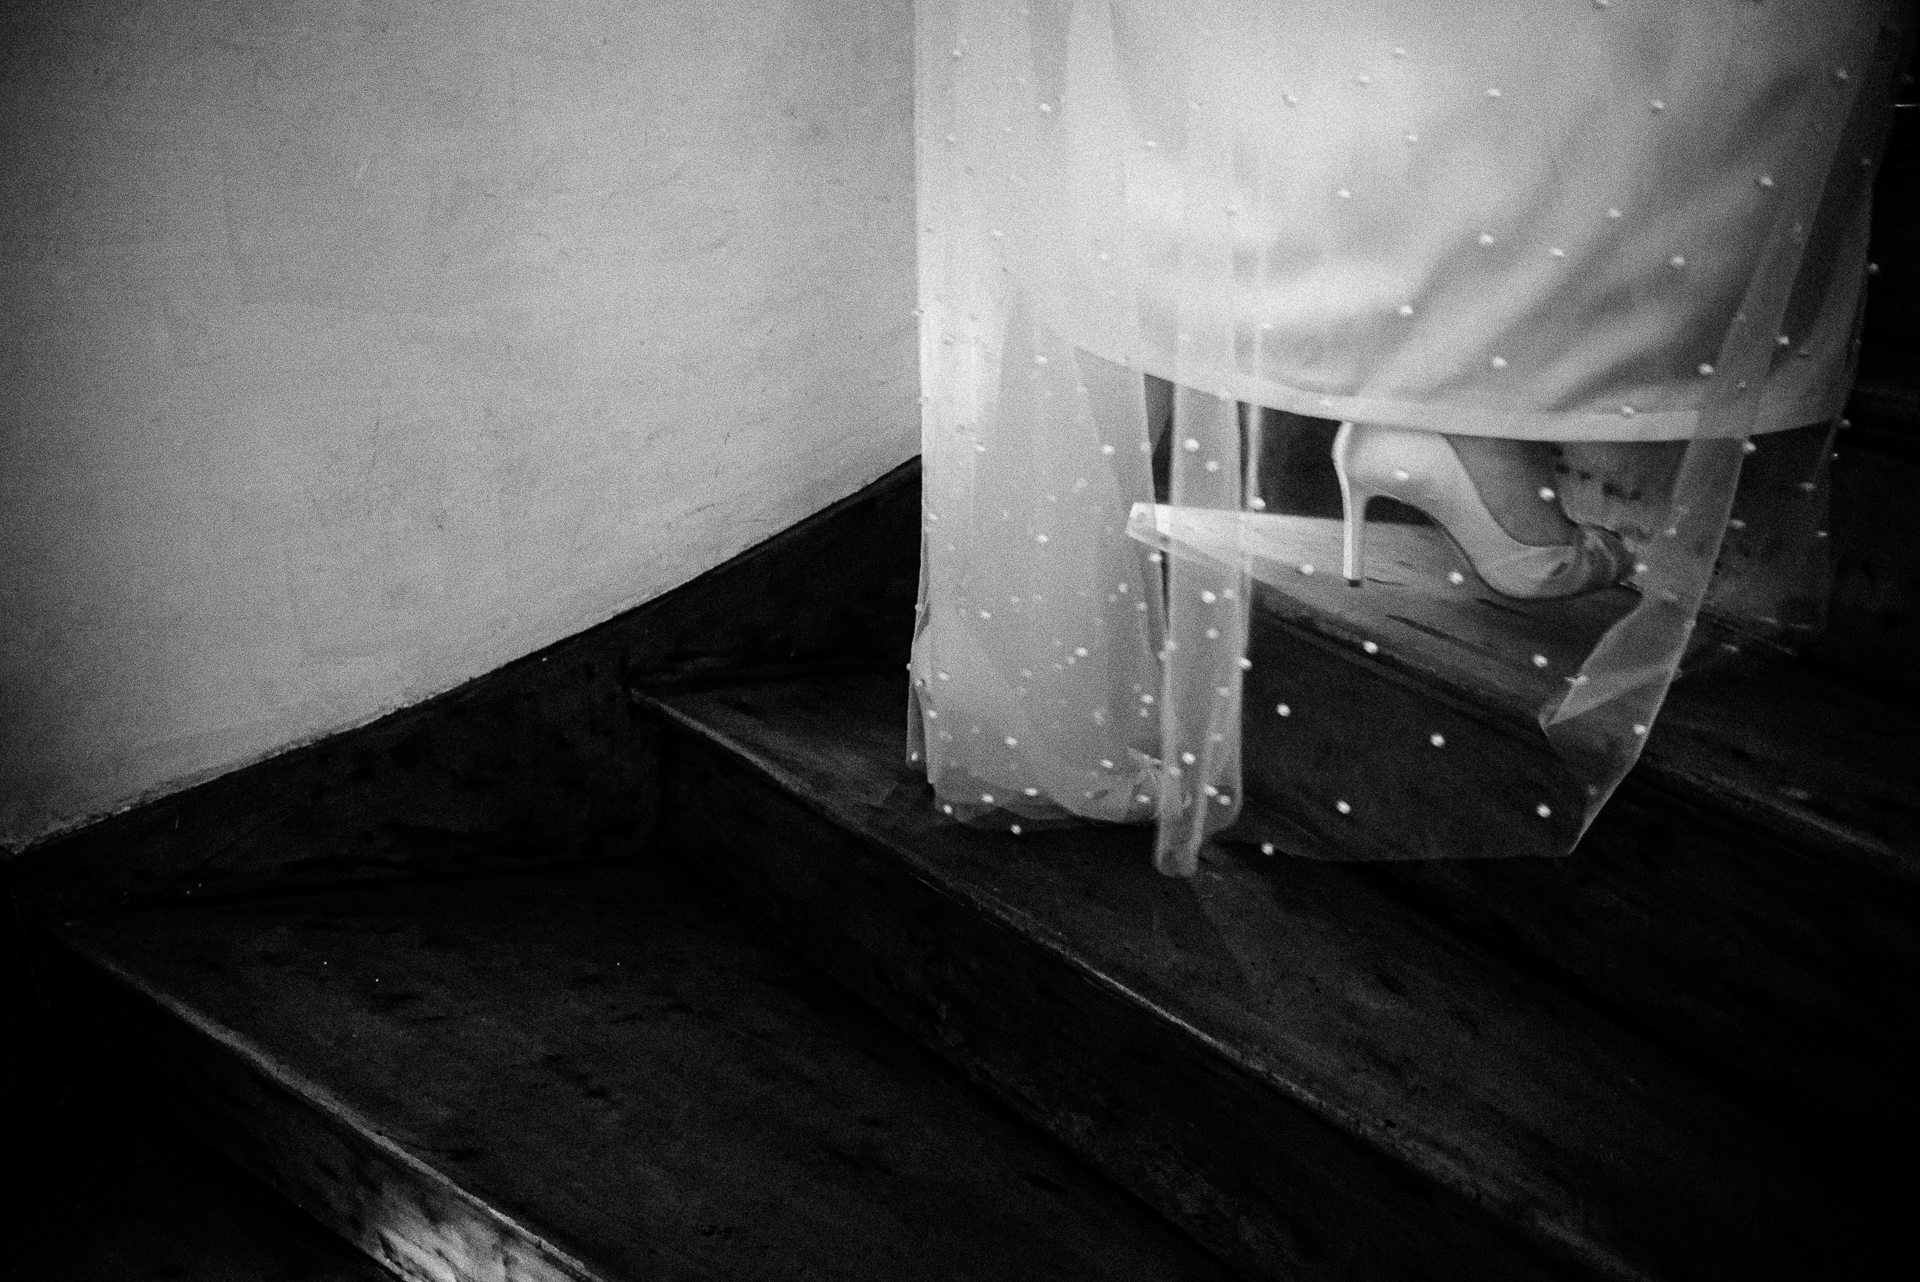 Top São Paulo Wedding Photography | A detail of the brides shoe